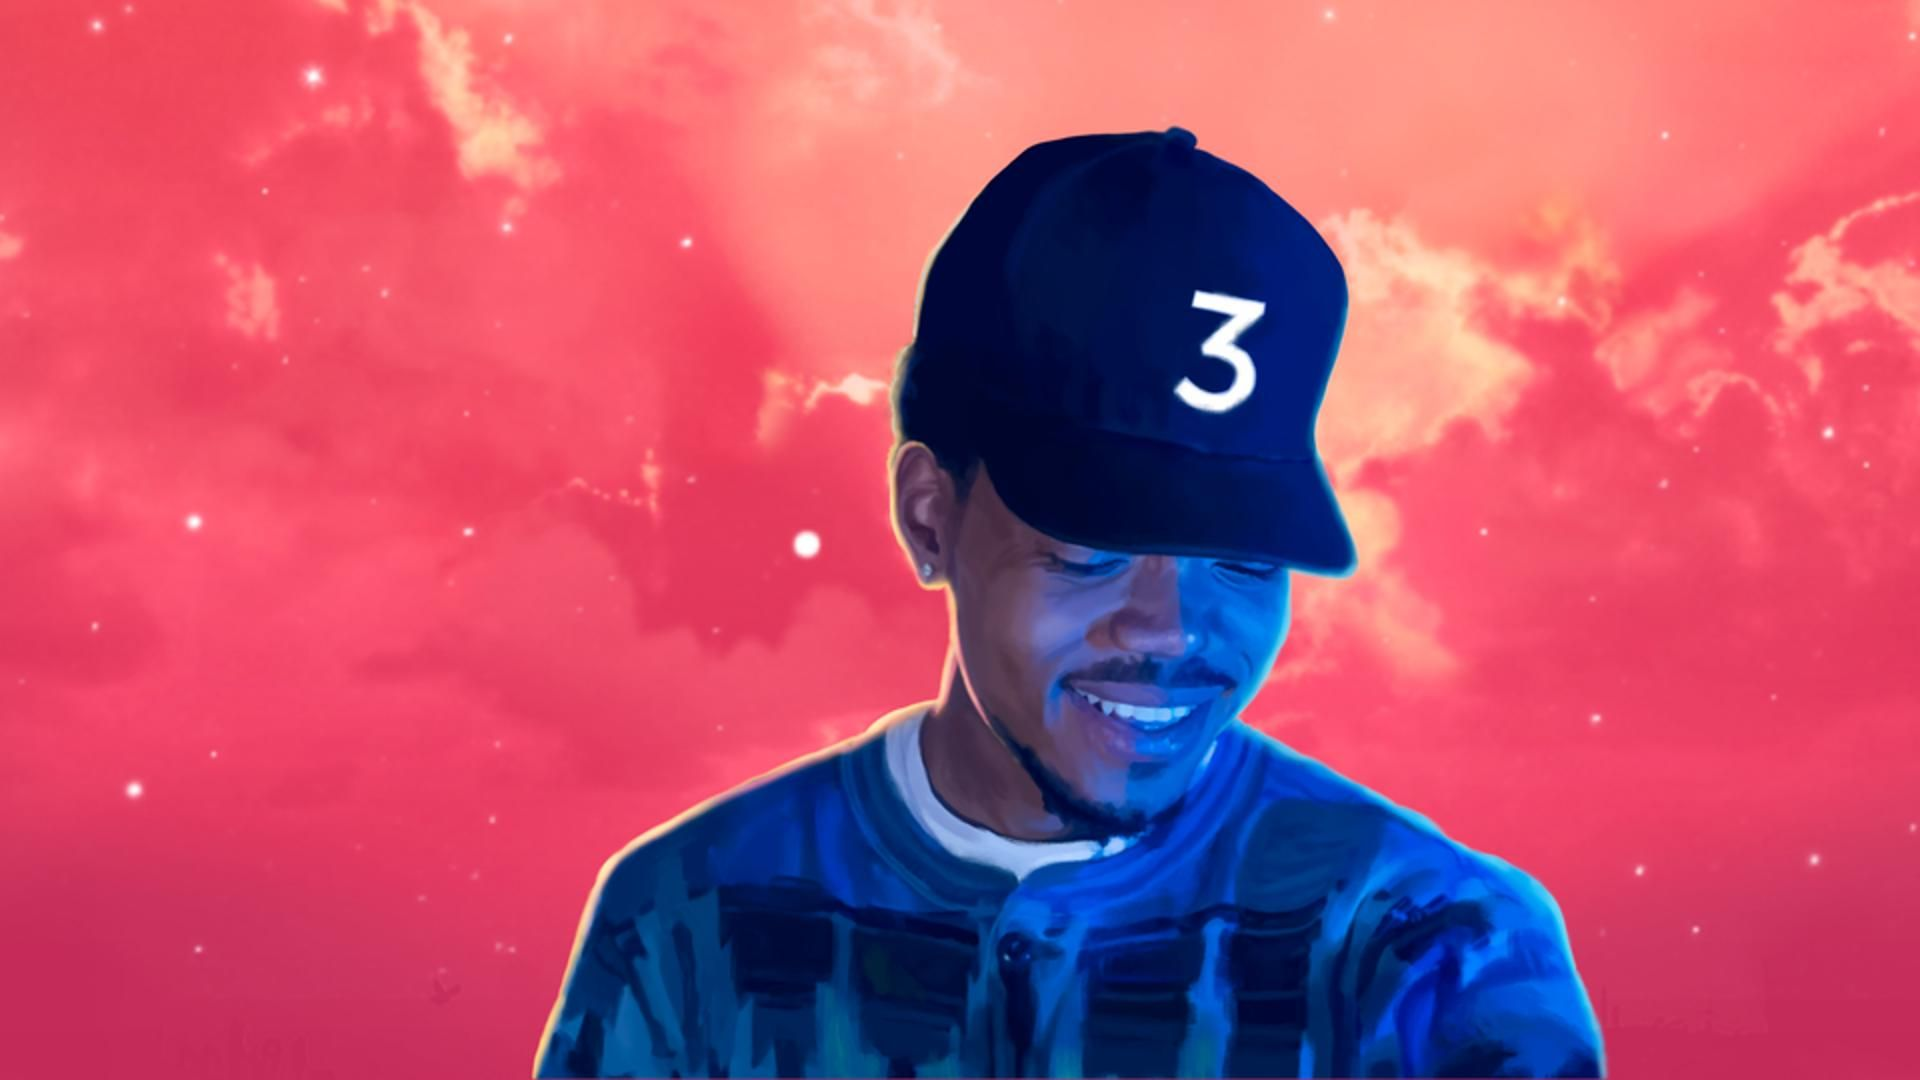 Chance 3 1920x1080 Followme Cooliphone6case On Twitter Facebook Google Instagram Linkedin Blogge Coloring Book Album Mixtape Cover Chance The Rapper